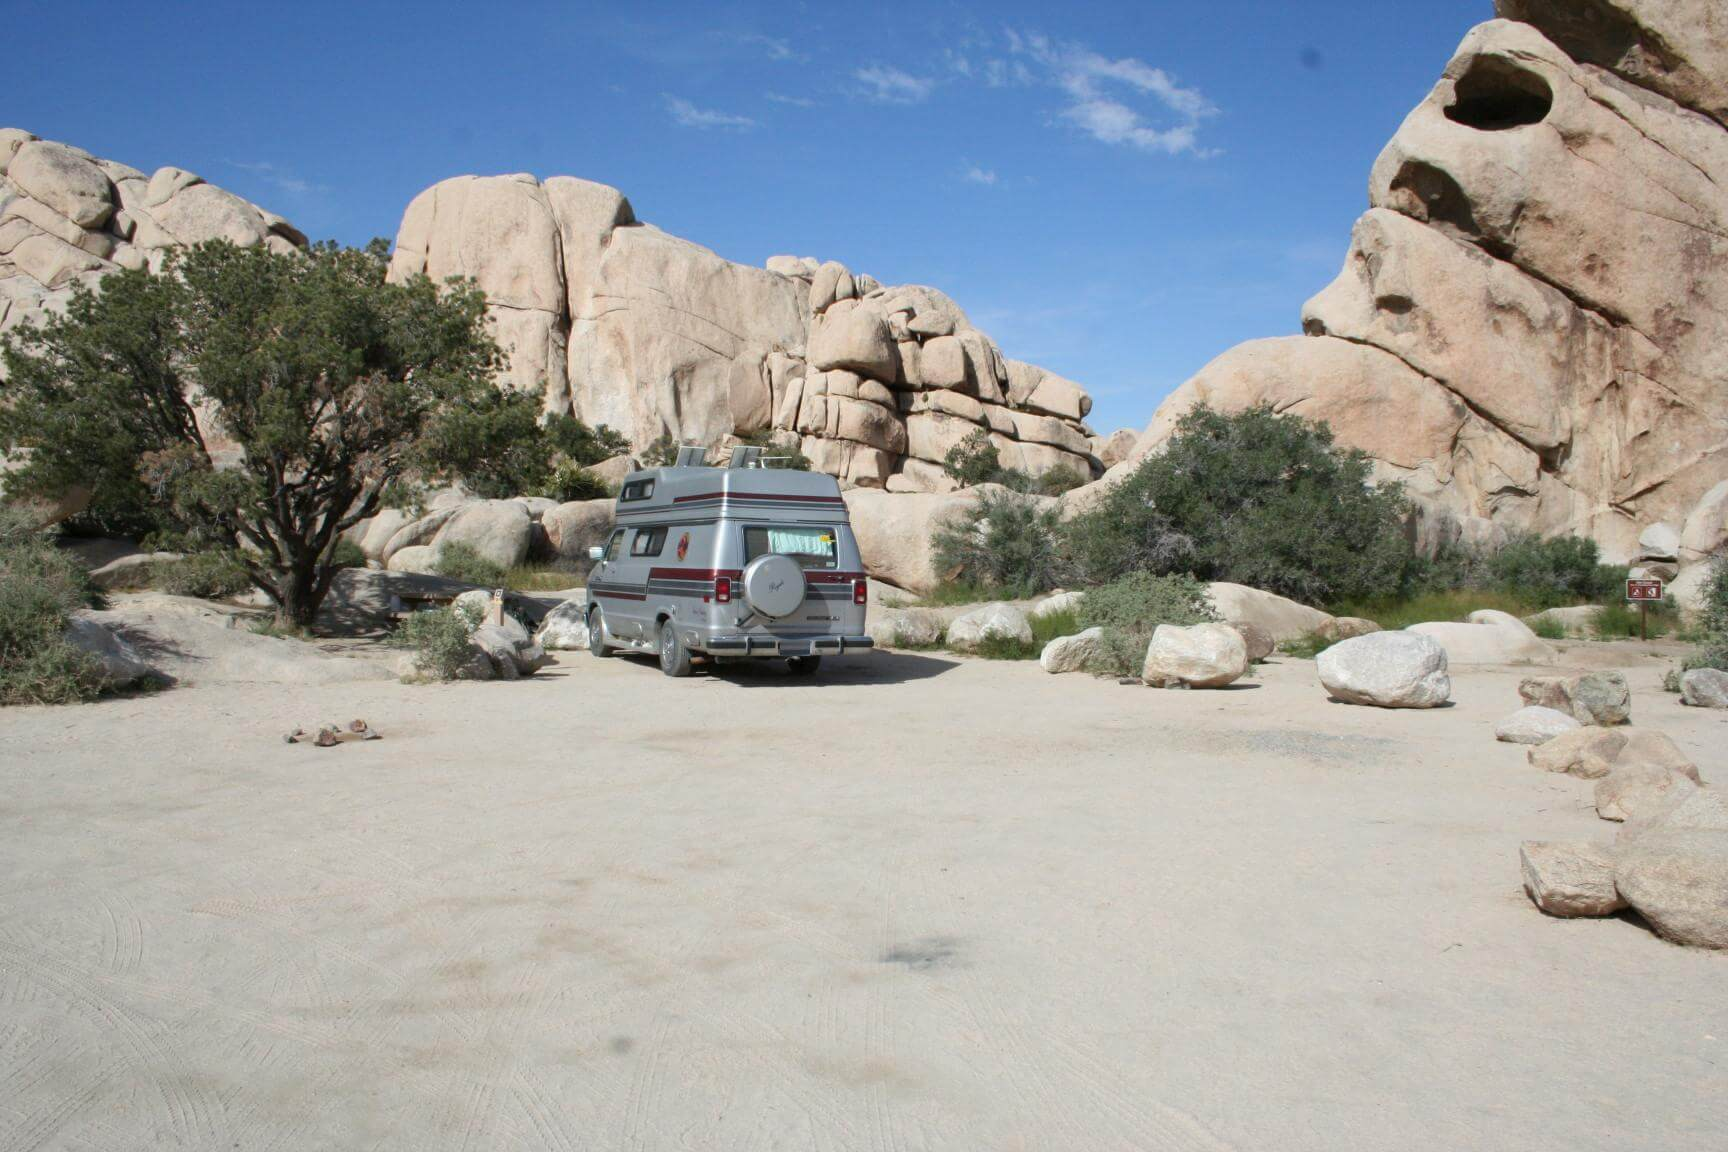 Joshua Tree National Park's Best Campsites Hidden Valley #3